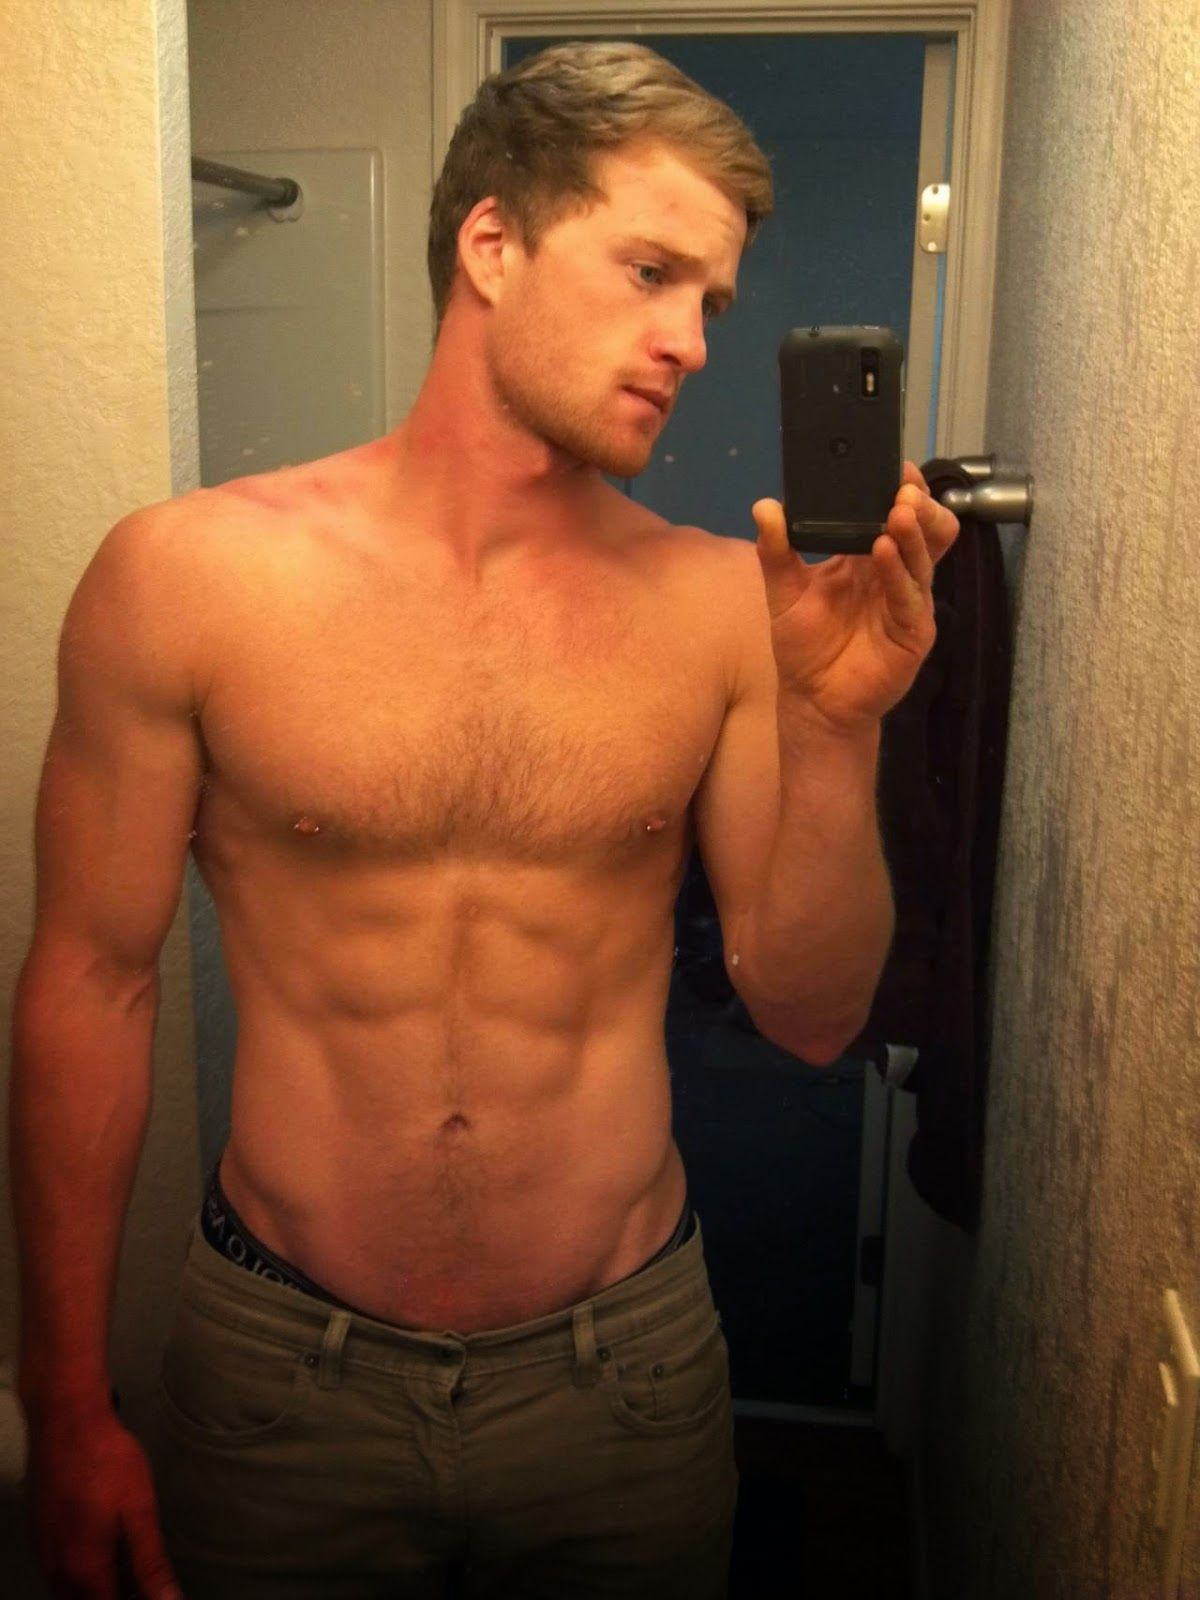 Pin On Haf Guys In Shirtless Selfies-7877